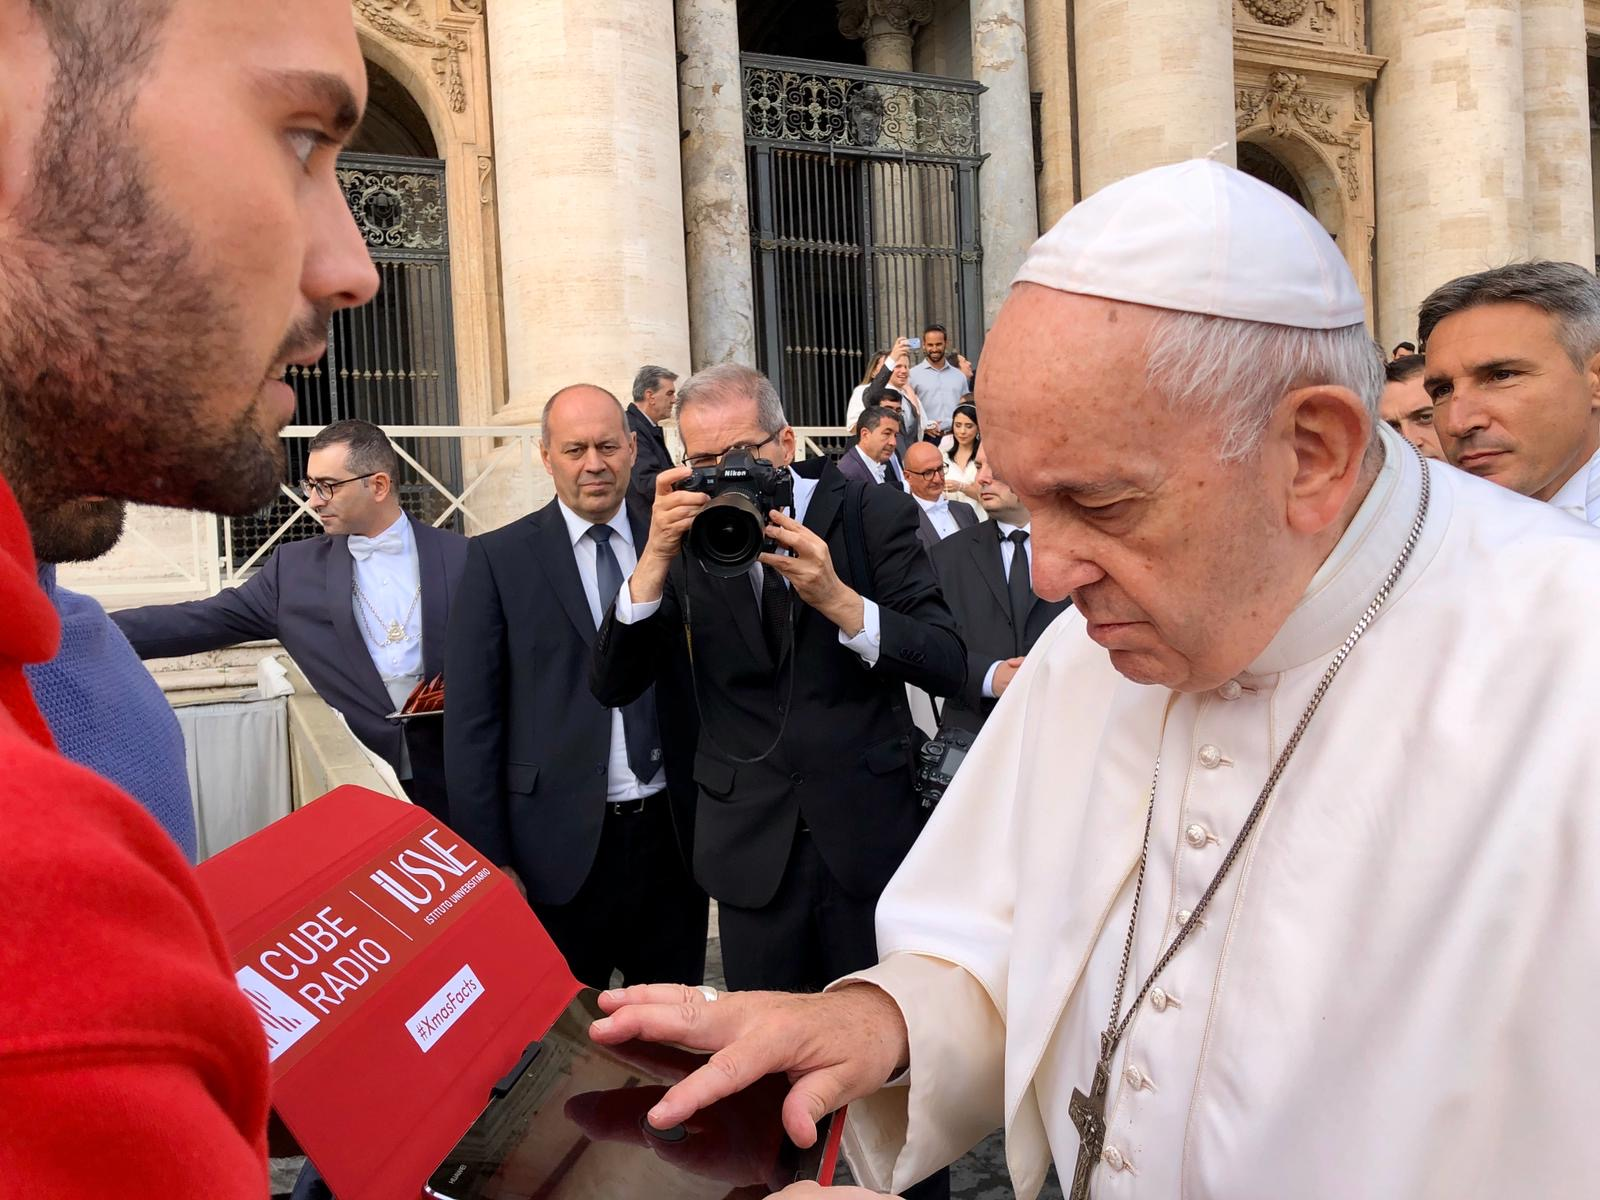 POPE LAUNCHES XMAS FACTS IN SAINT PETER SQUARE